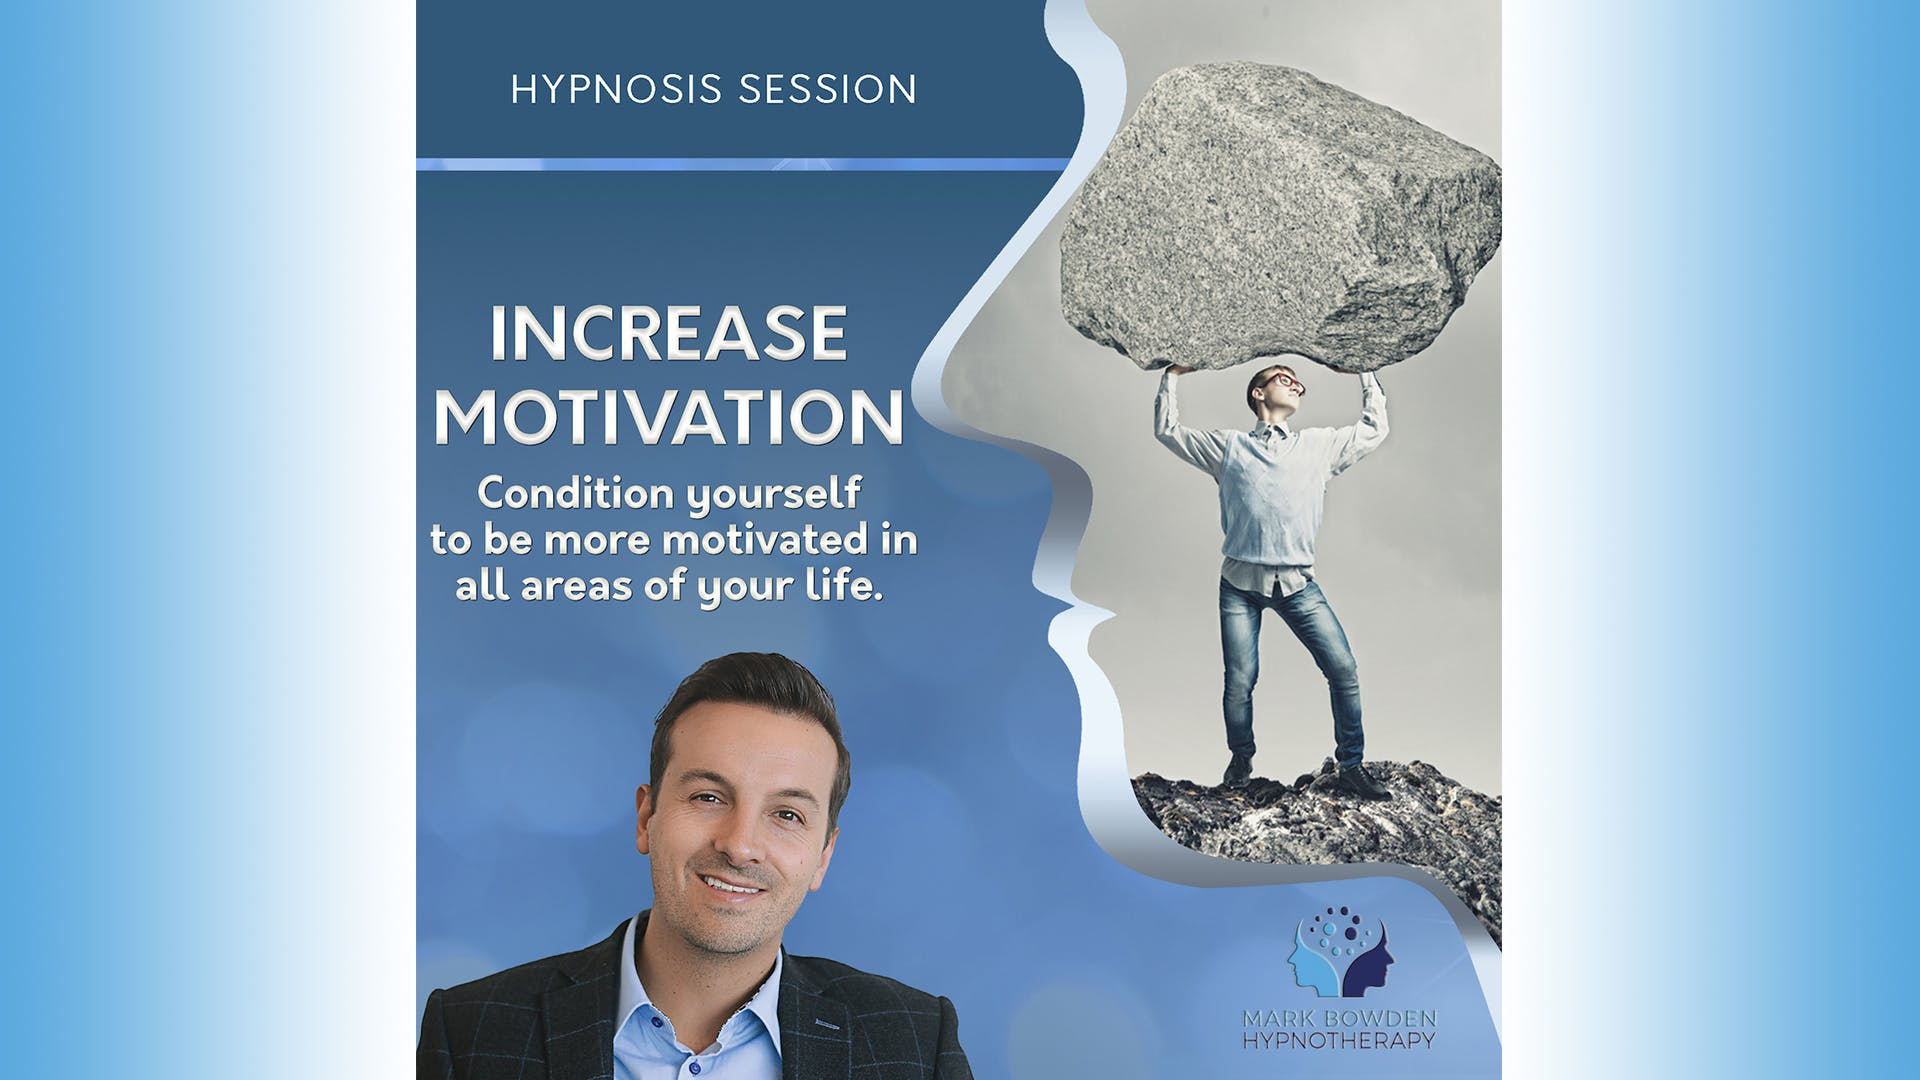 Increase Motivation